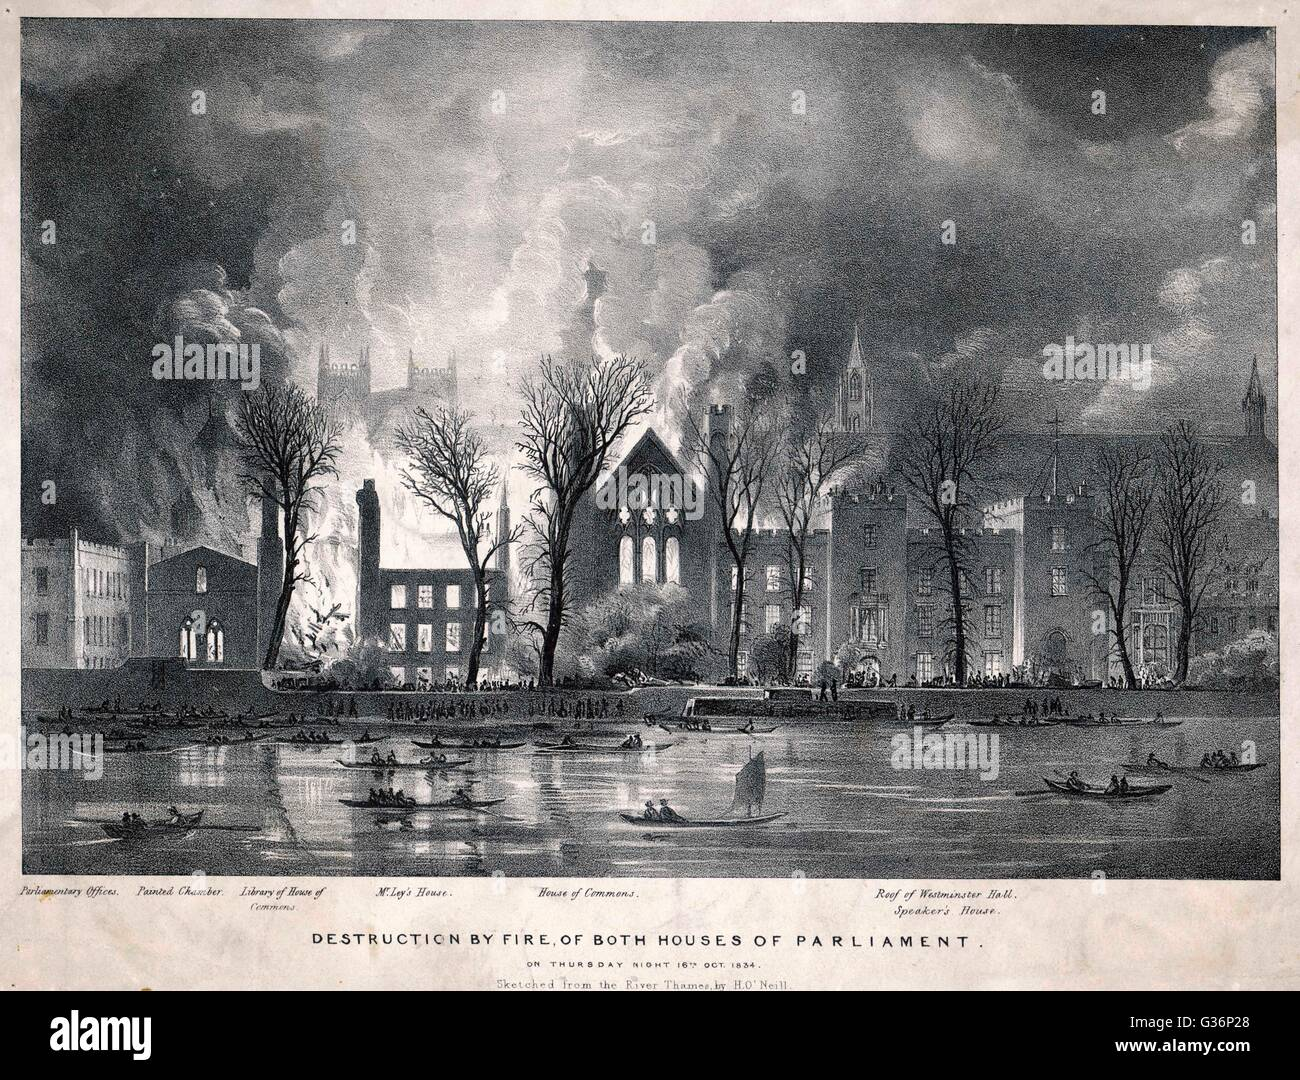 The Houses of Parliament destroyed by fire, as seen from across the River Thames.         Date: 16 October 1834 - Stock Image